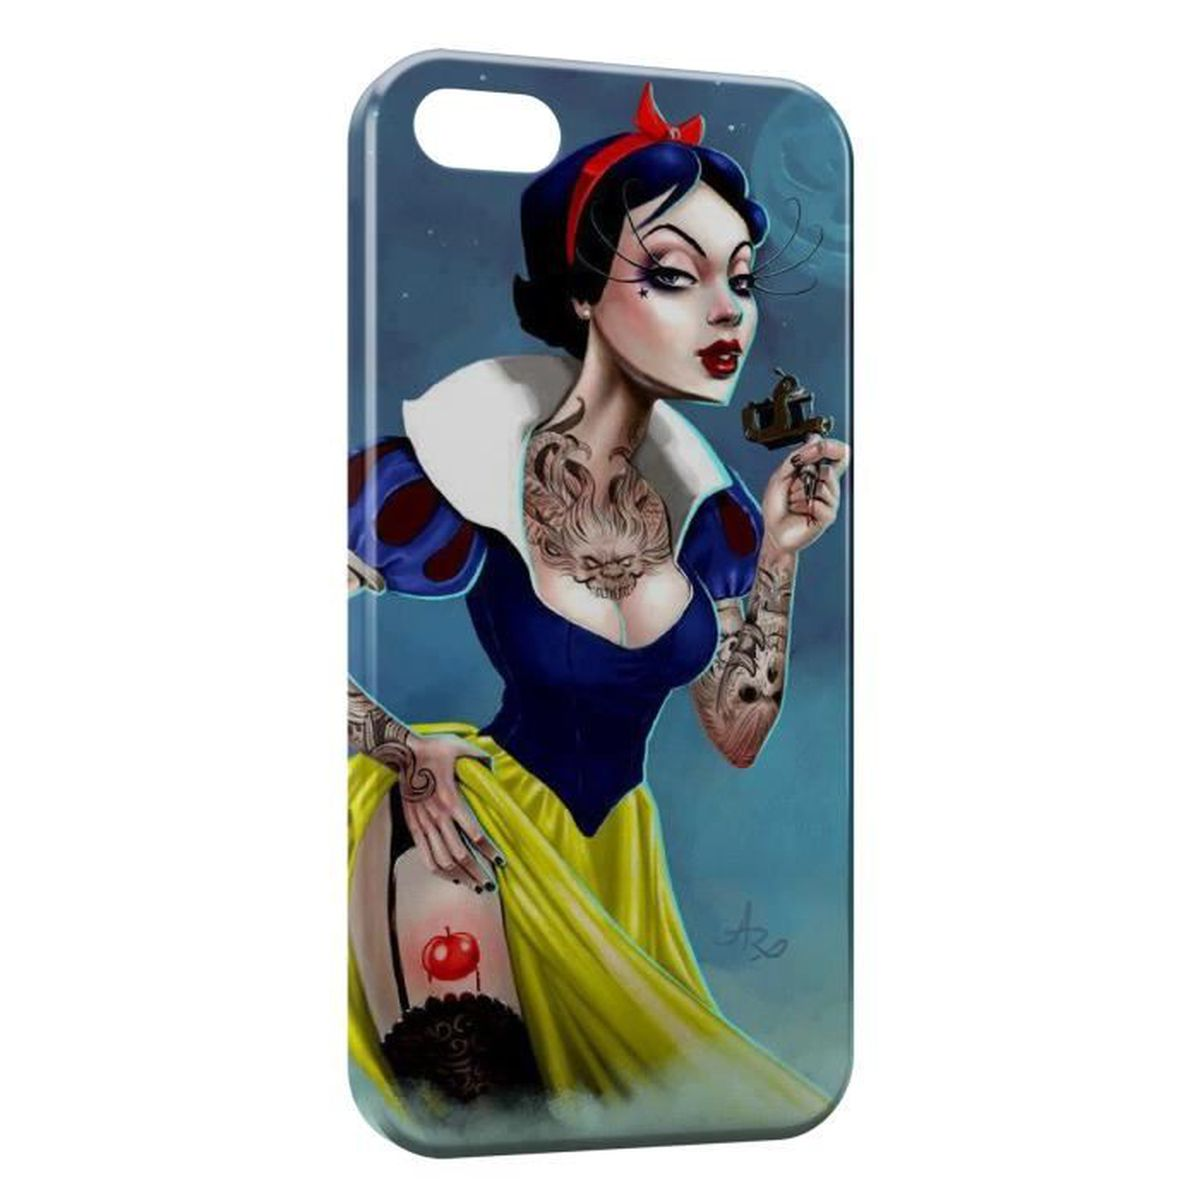 coque iphone 6 joconde